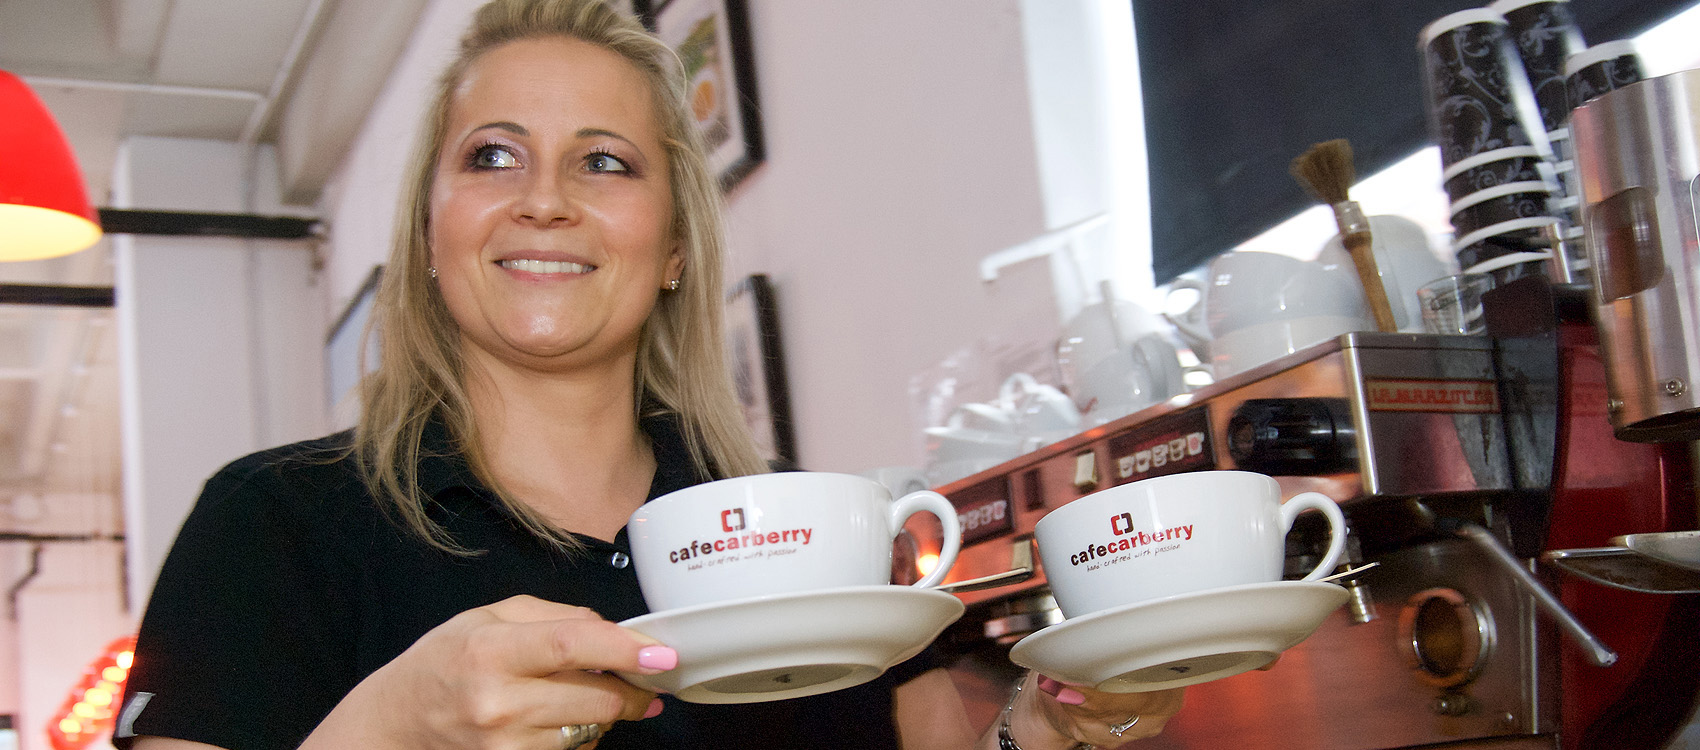 Carberry Catering Belfast, waitress carrying coffee from coffee machine - photo 1100.